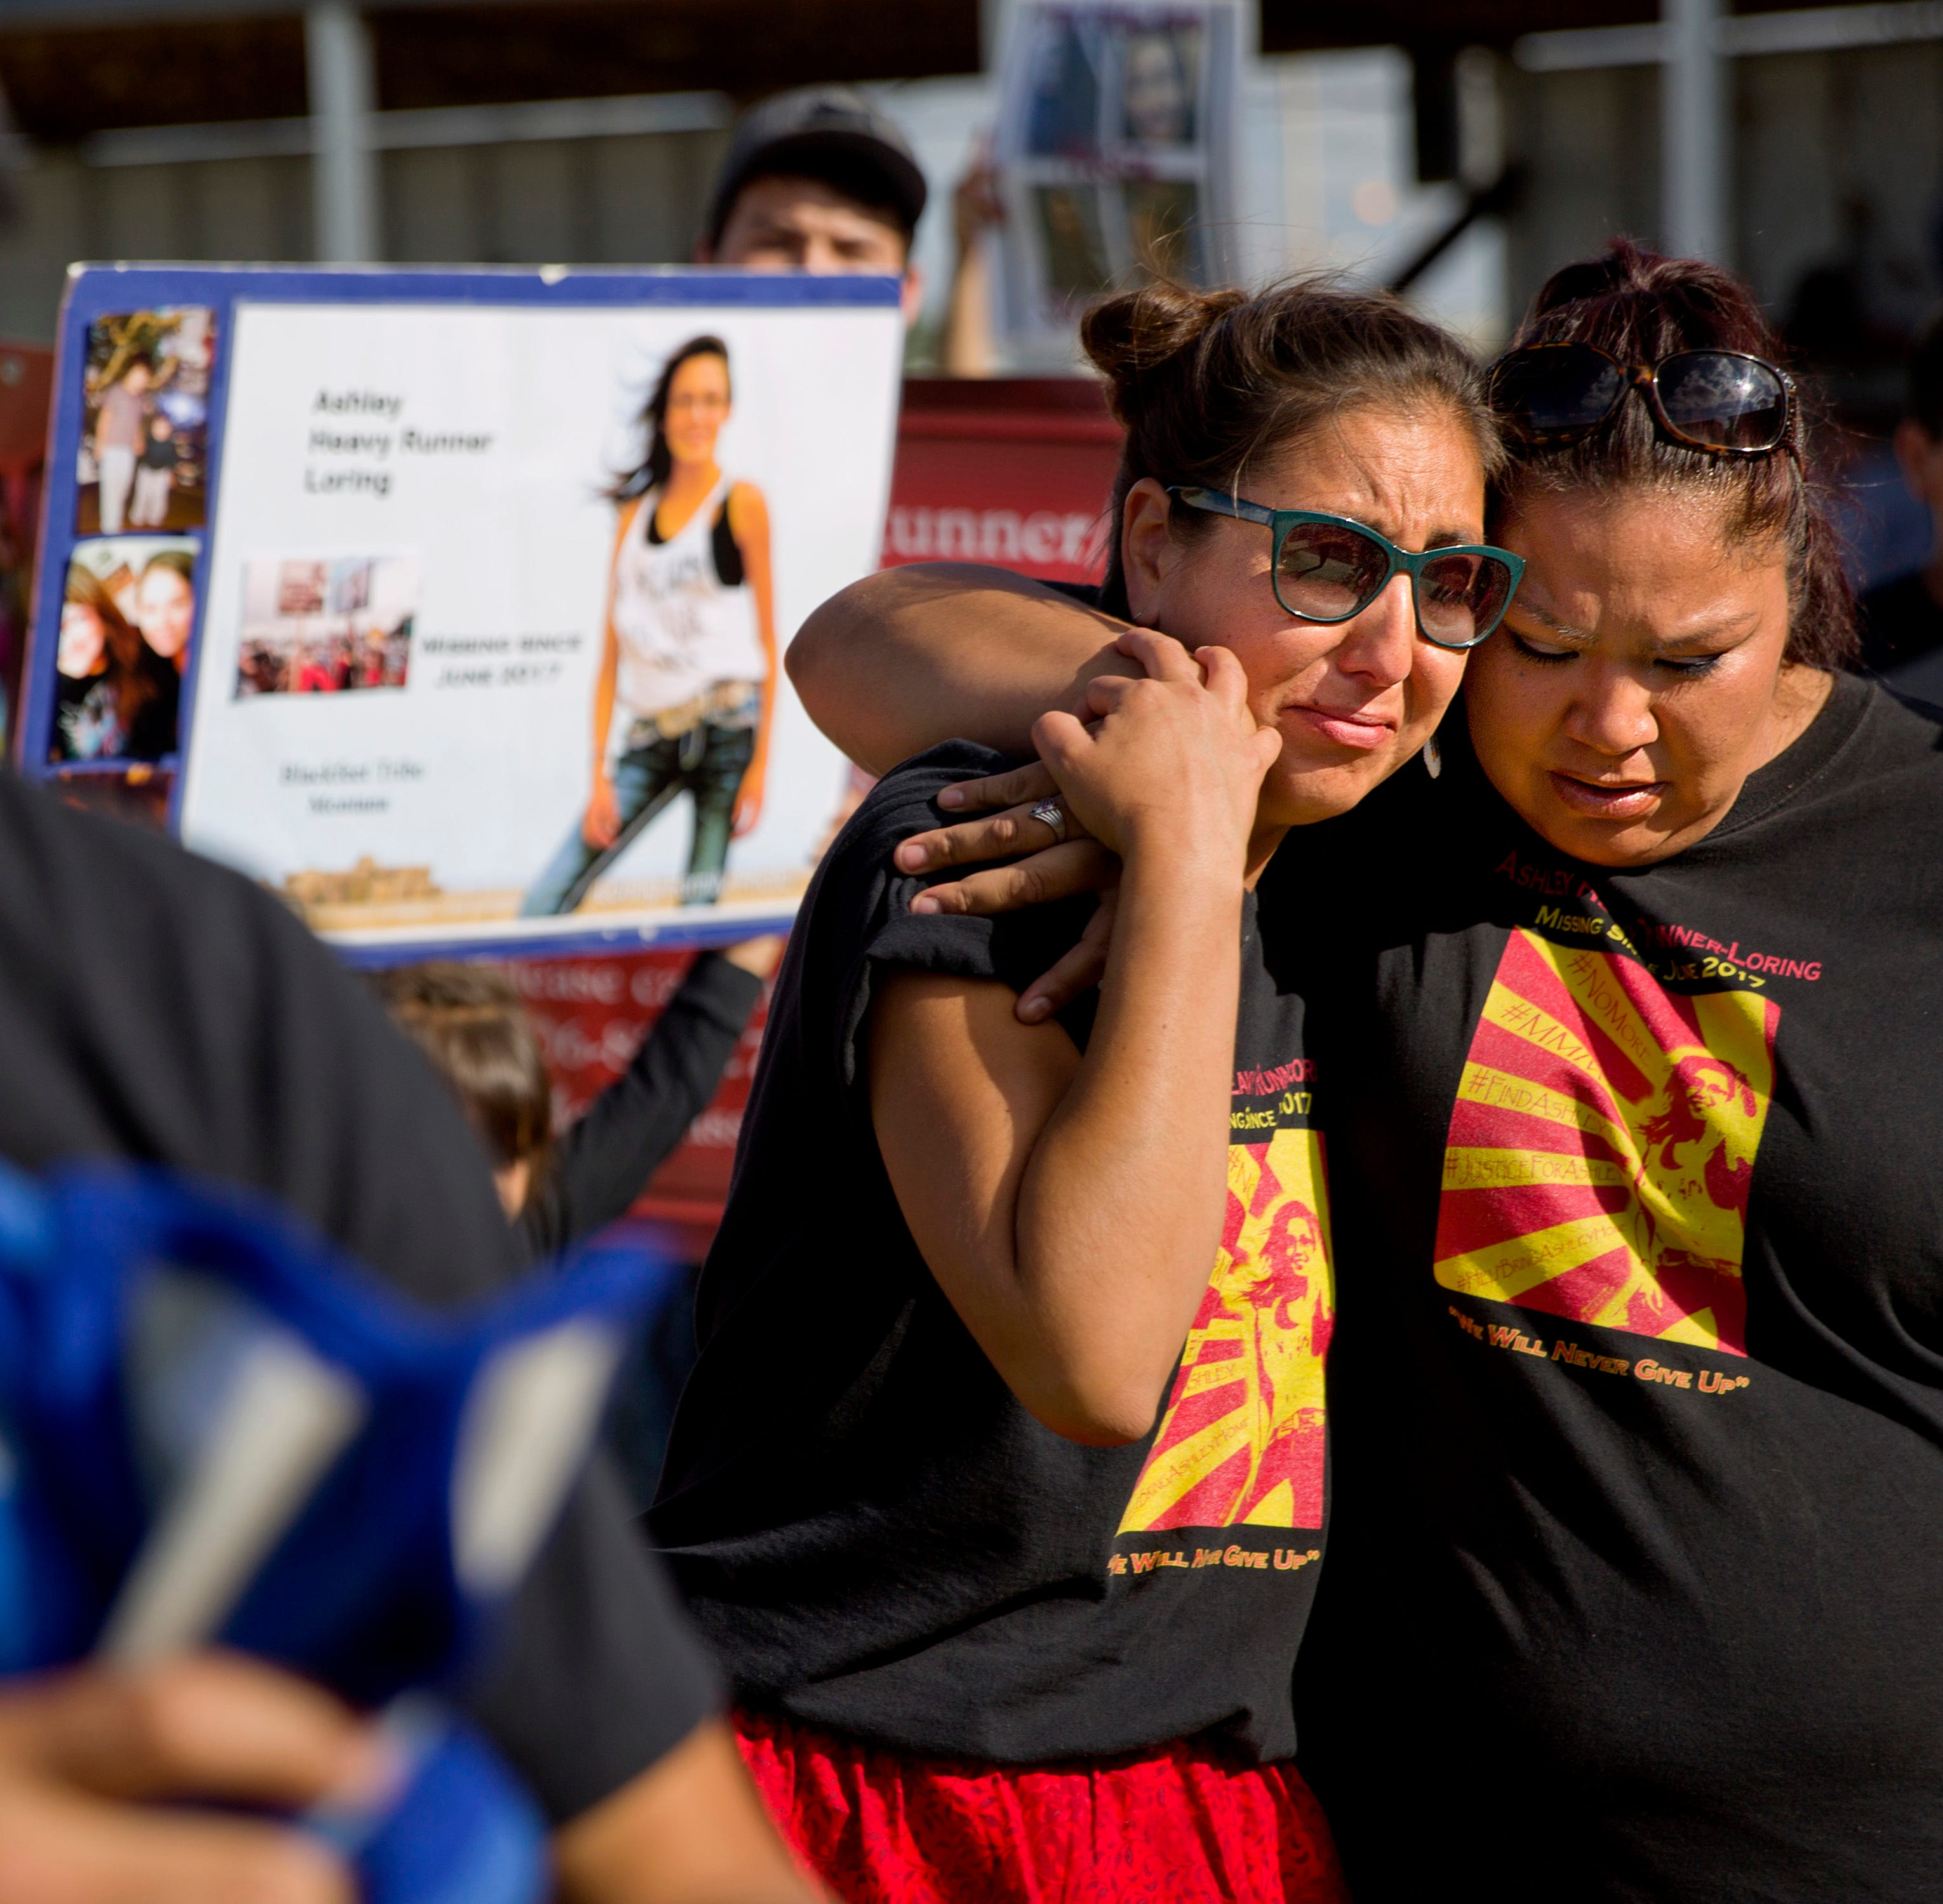 FILE - In this July 14, 2018 file photo, Jenna Loring, left, the aunt of Ashley HeavyRunner Loring, cries with her cousin, Lissa Loring, during a traditional blanket dance before the crowd at the North American Indian Days celebration on the Blackfeet Indian Reservation in Browning, Mont. A study released by a Native American non-profit says numerous police departments in cities nationwide are not adequately identifying or reporting cases of missing and murdered indigenous women. (AP Photo/David Goldman, File)